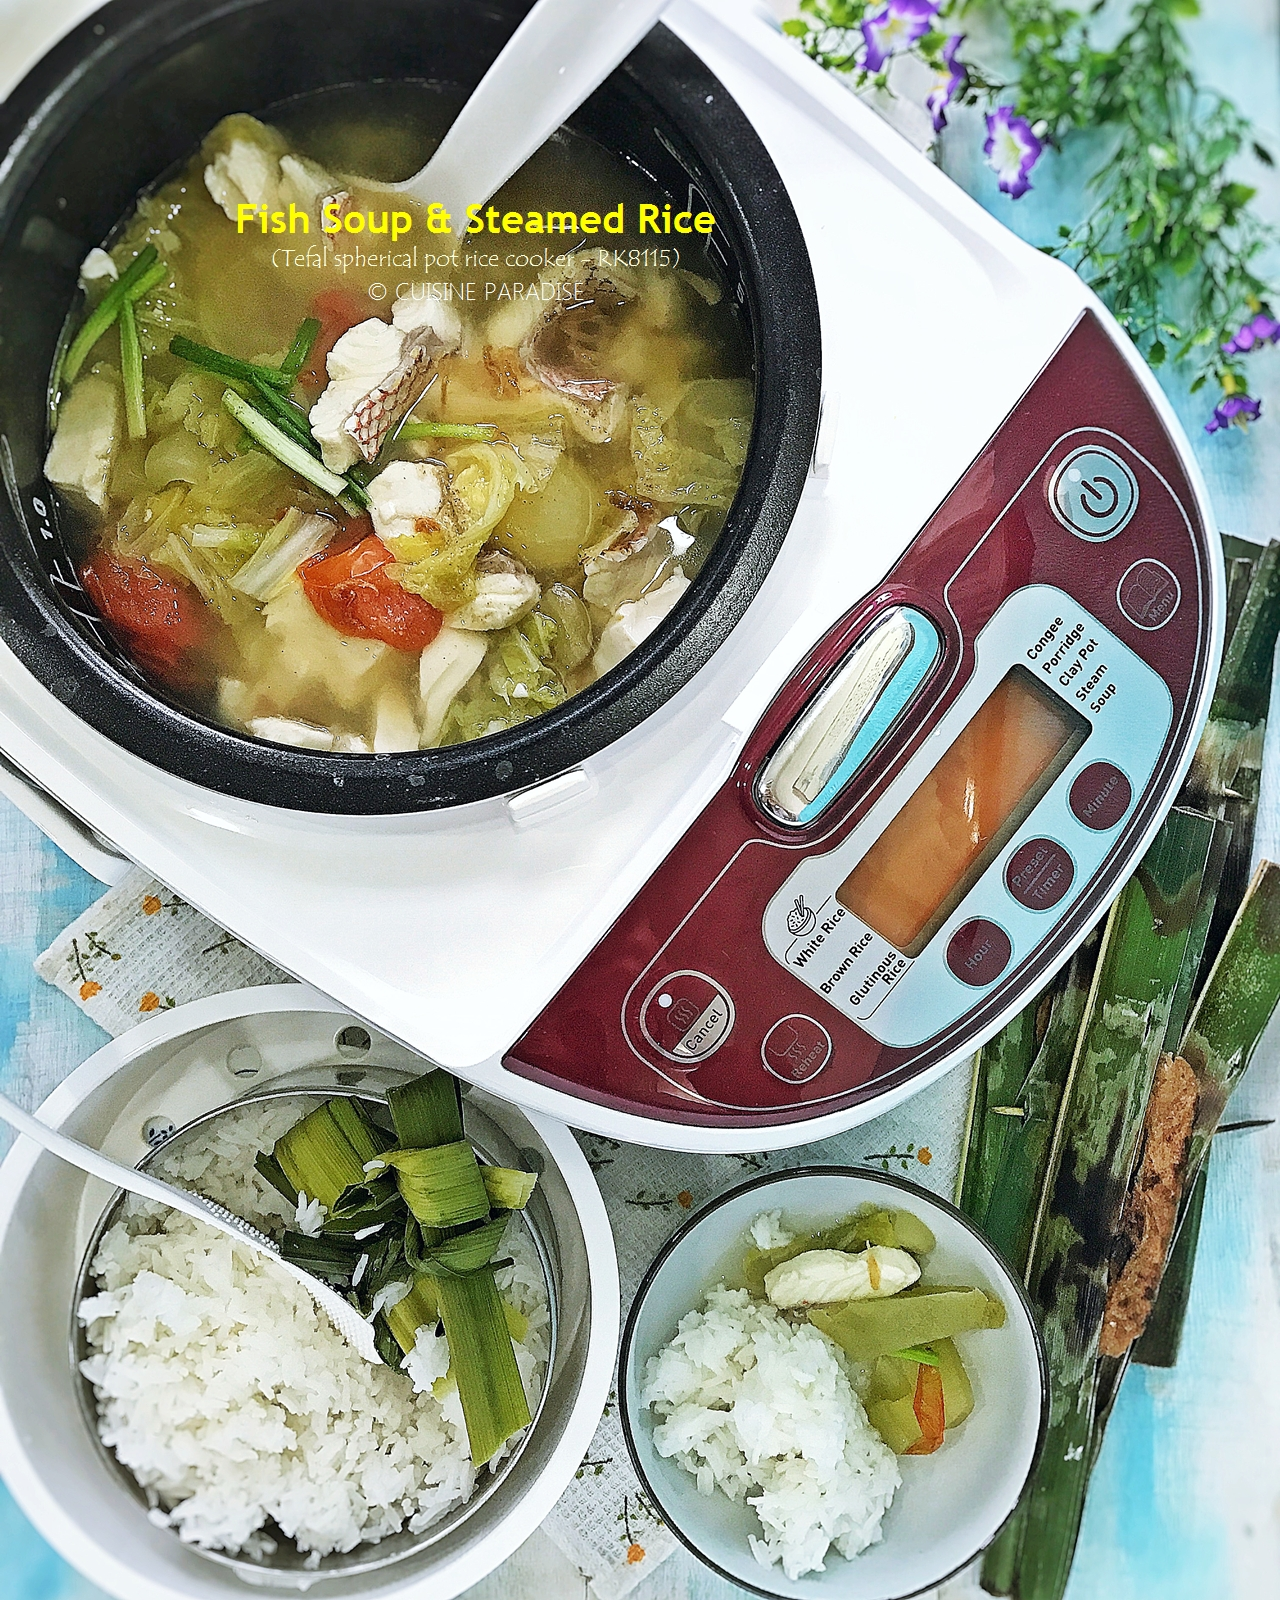 Cuisine paradise singapore food blog recipes reviews and travel recipes videos 3 one pot meal with tefal advanced spherical pot rice cooker forumfinder